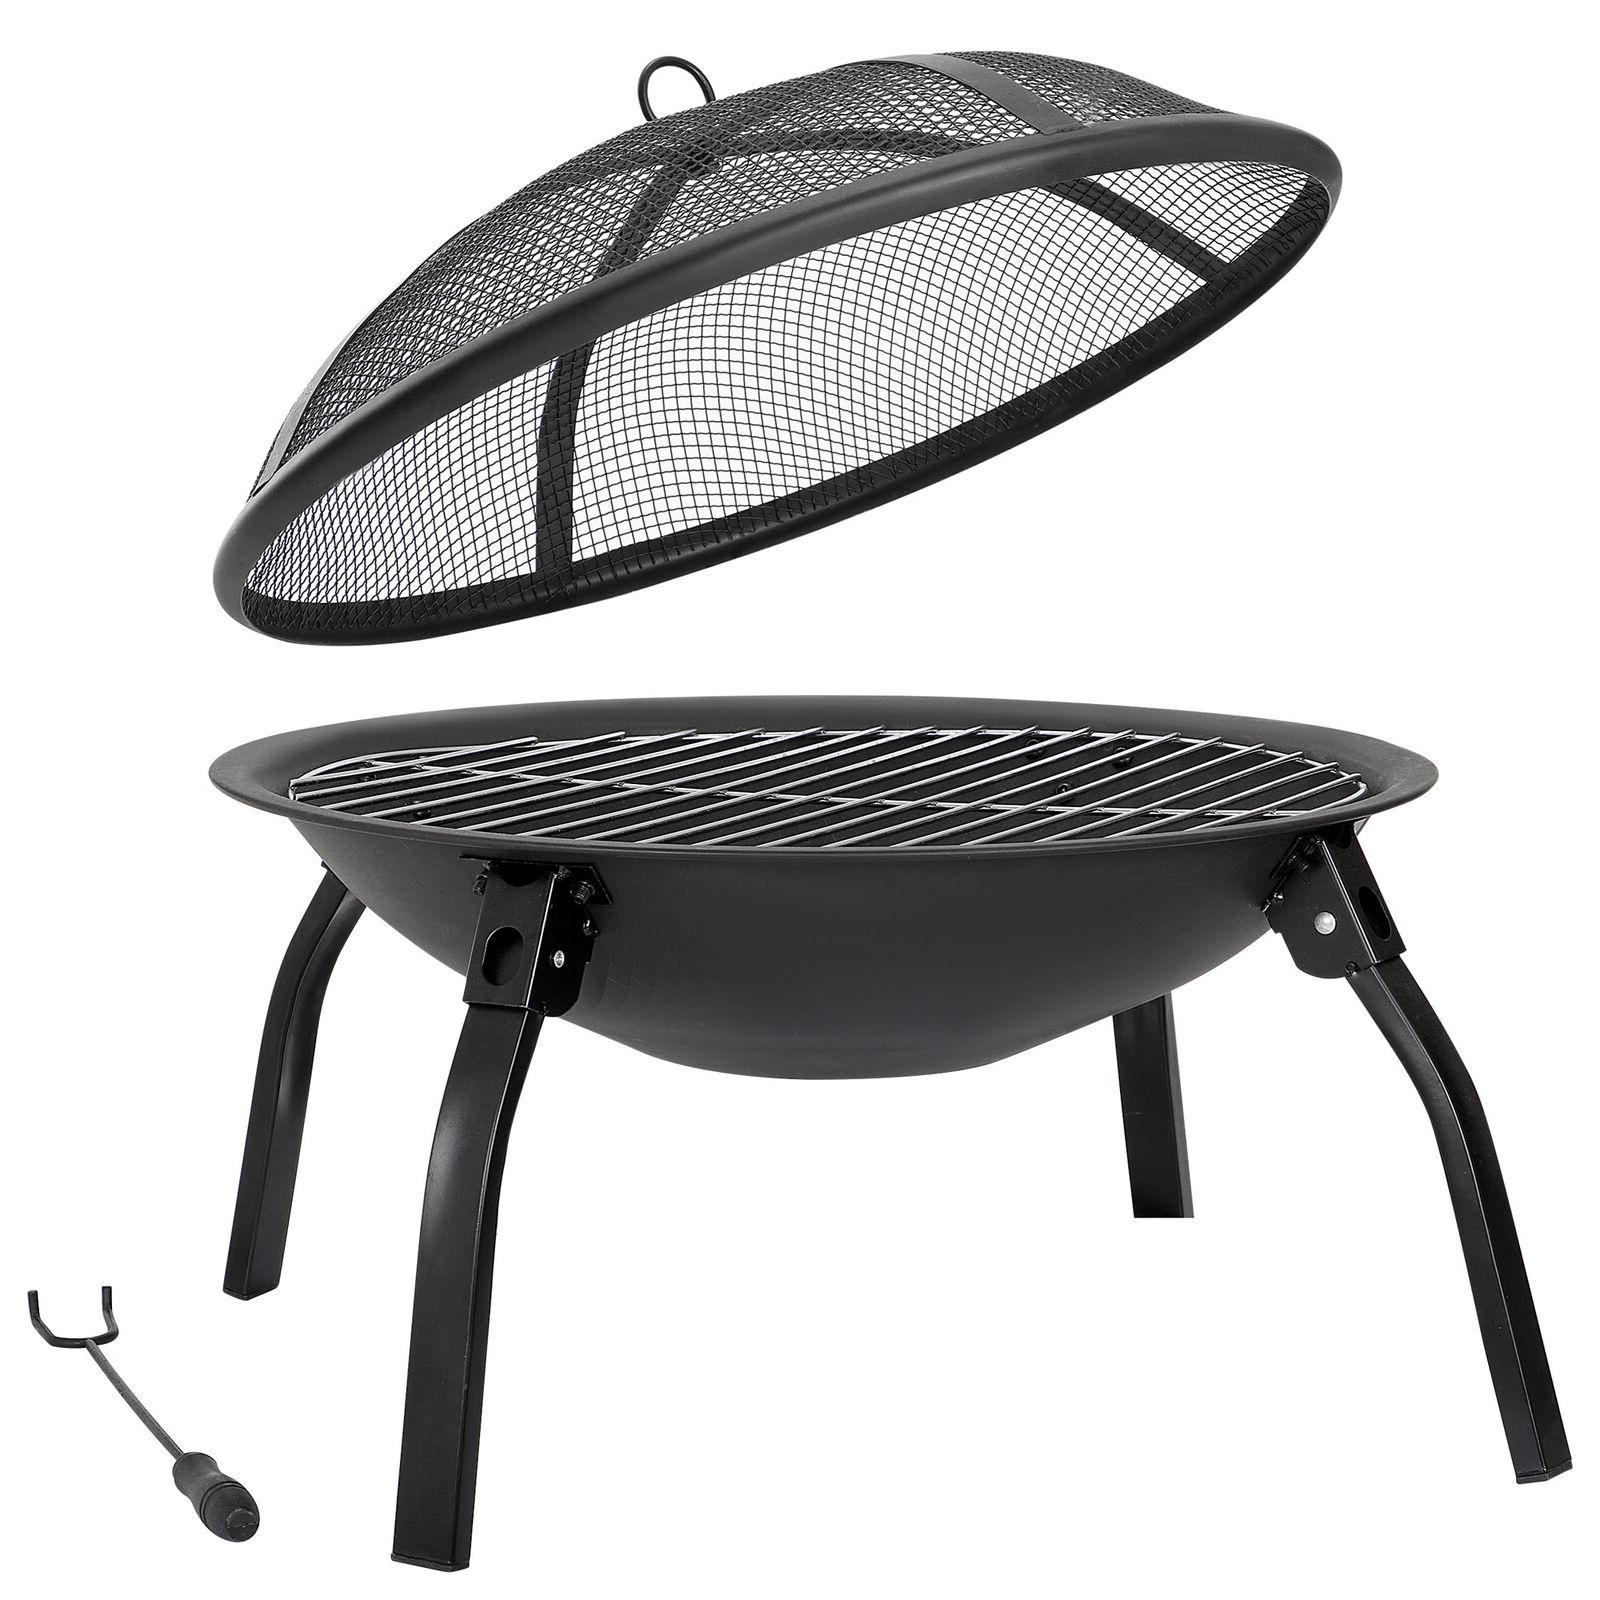 22 Fire Pit Burning Portable Balcony